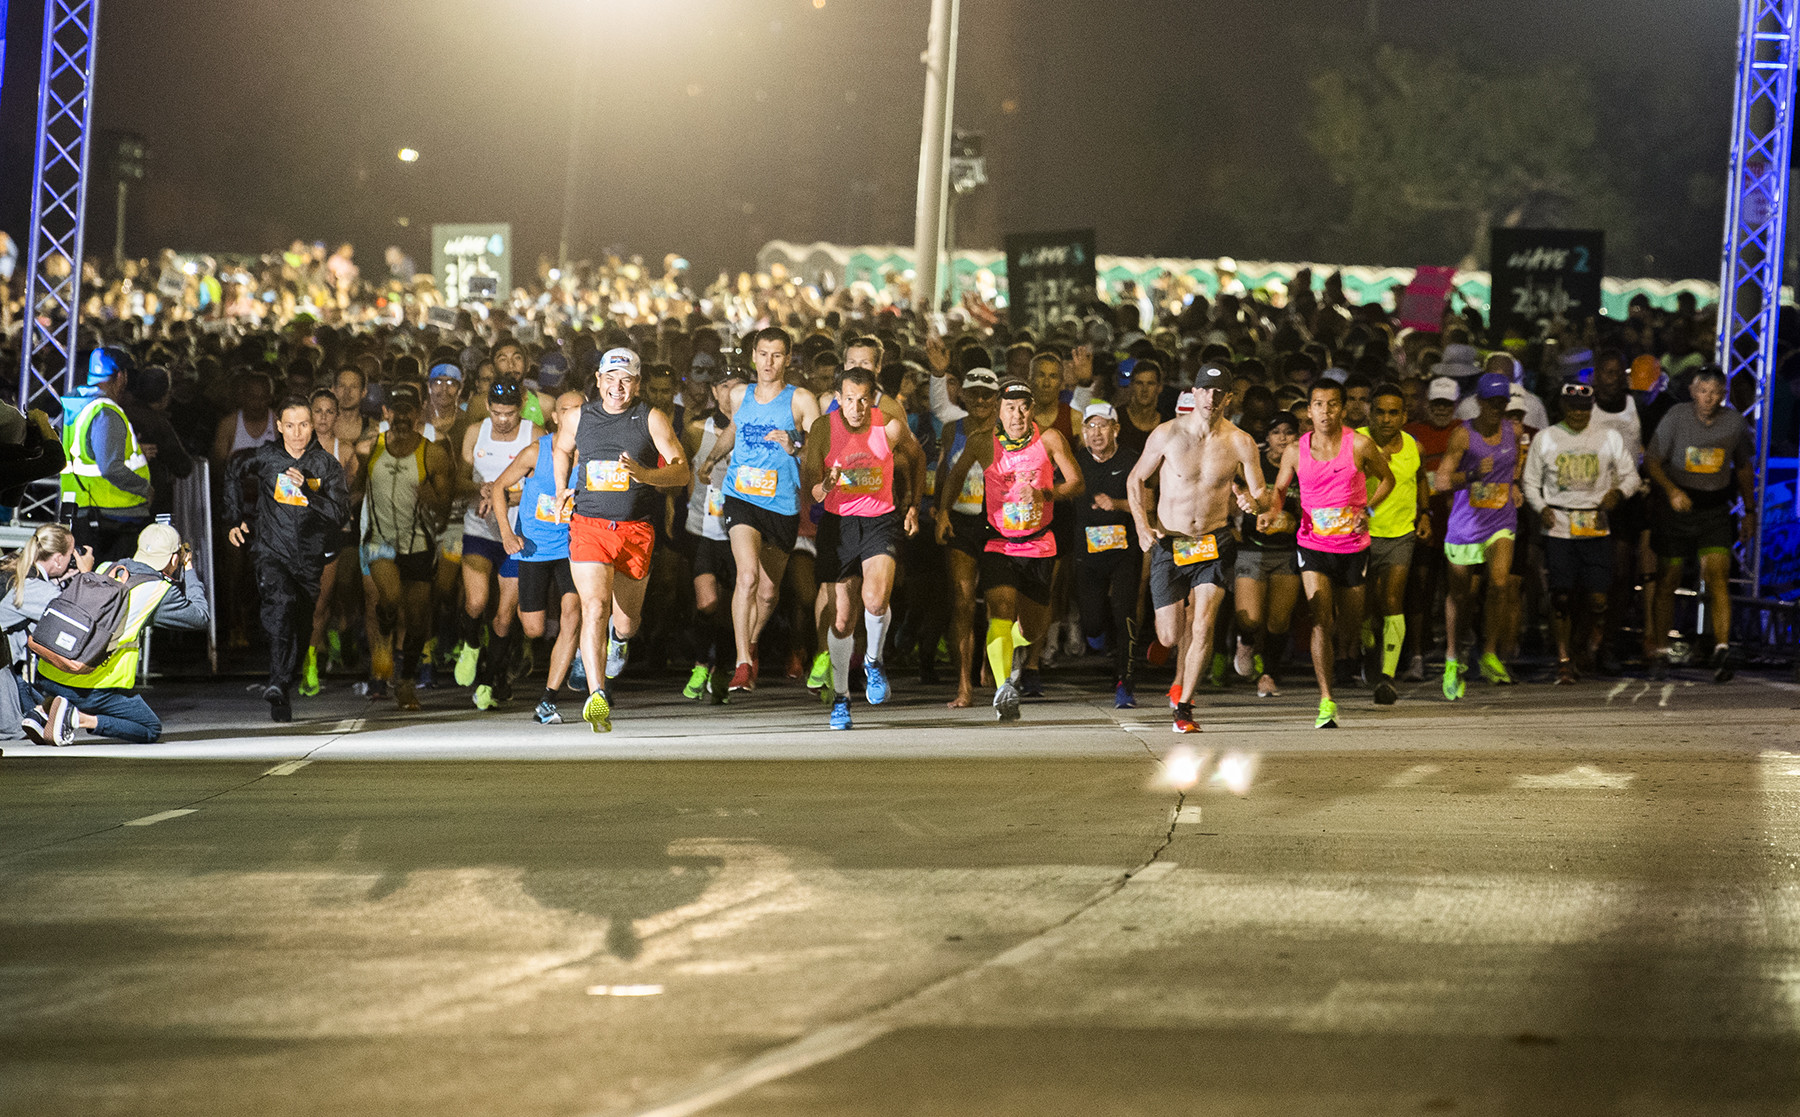 The 2020 Long Beach Marathon has been cancelled due to the coronavirus concerns